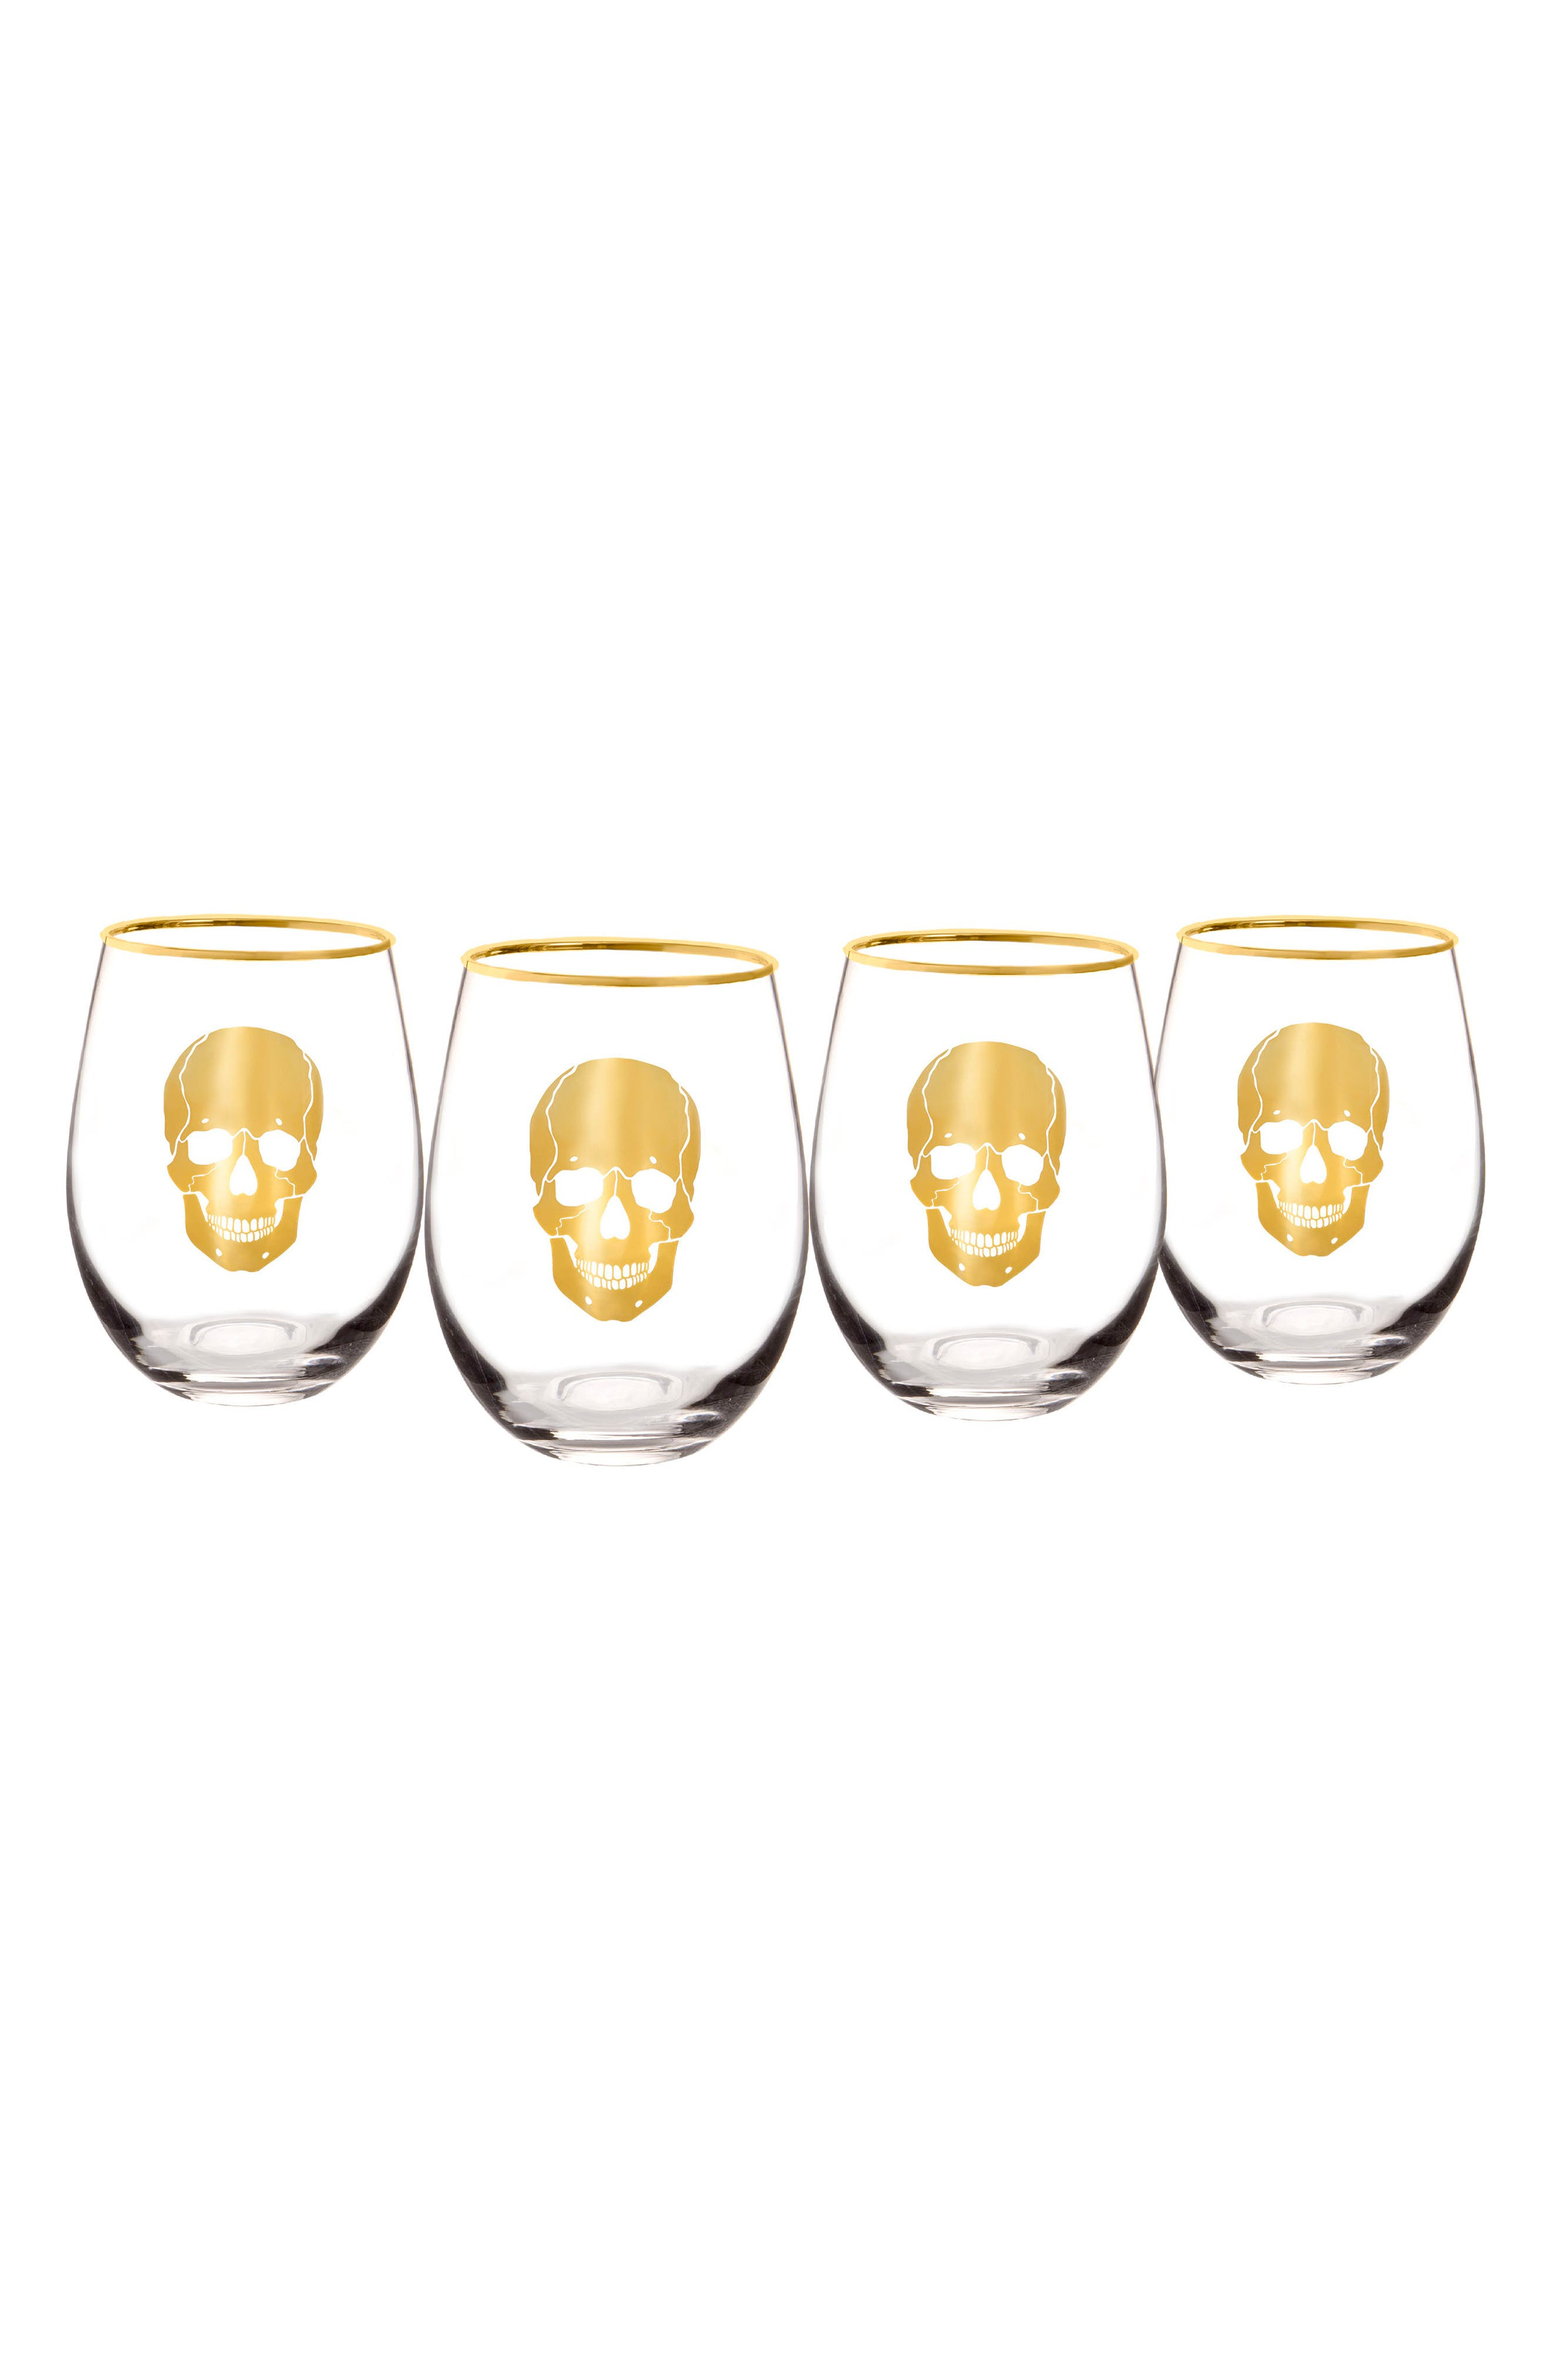 Cathy's Concepts Skull Set of 4 Stemless Wine Glasses